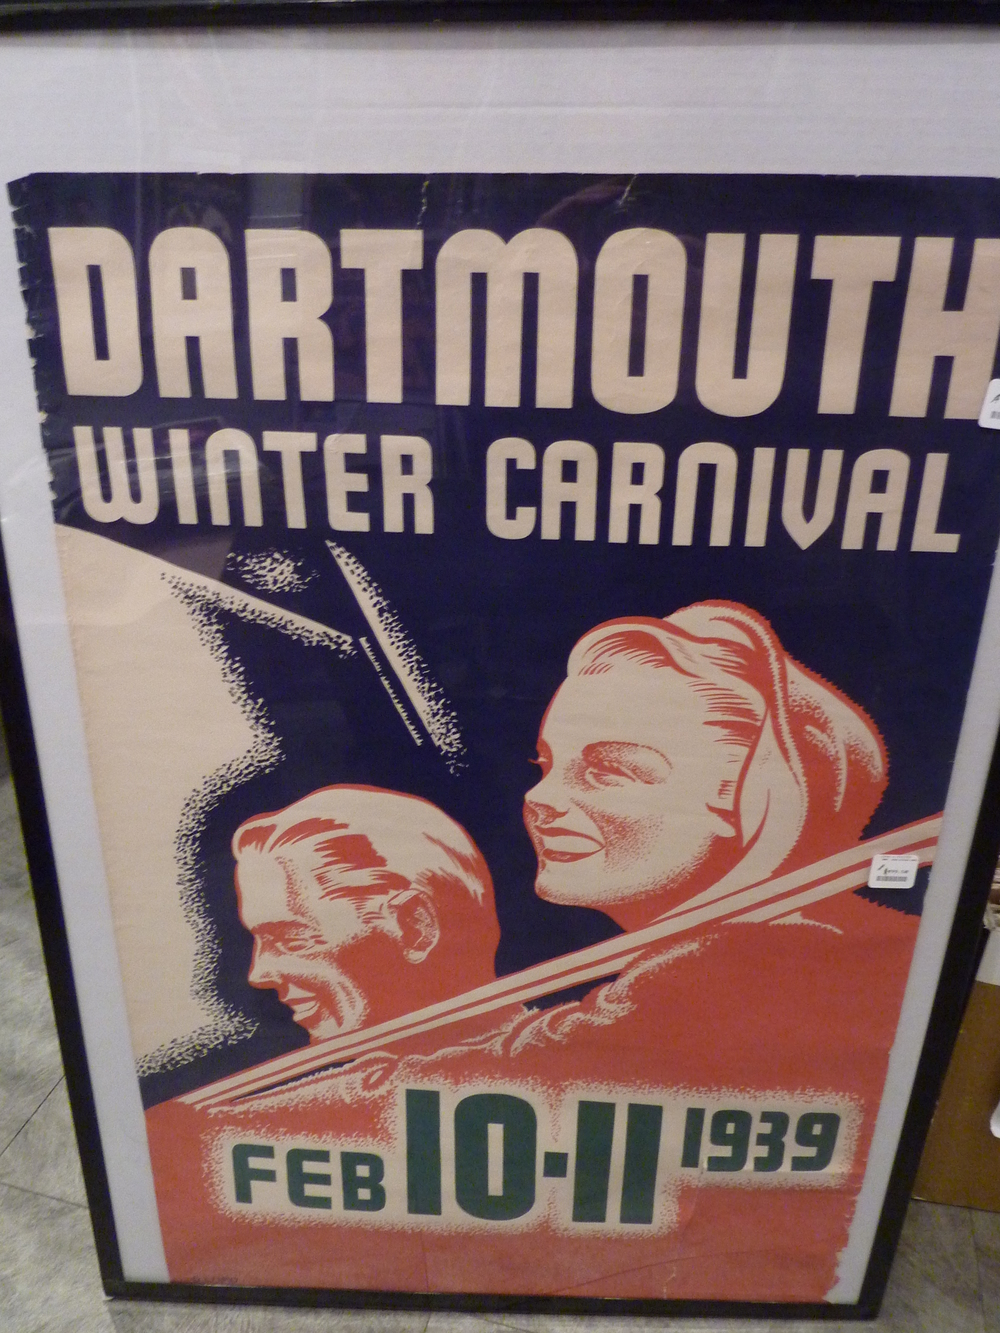 Dartmouth Winter Carnival 1939 (orange)